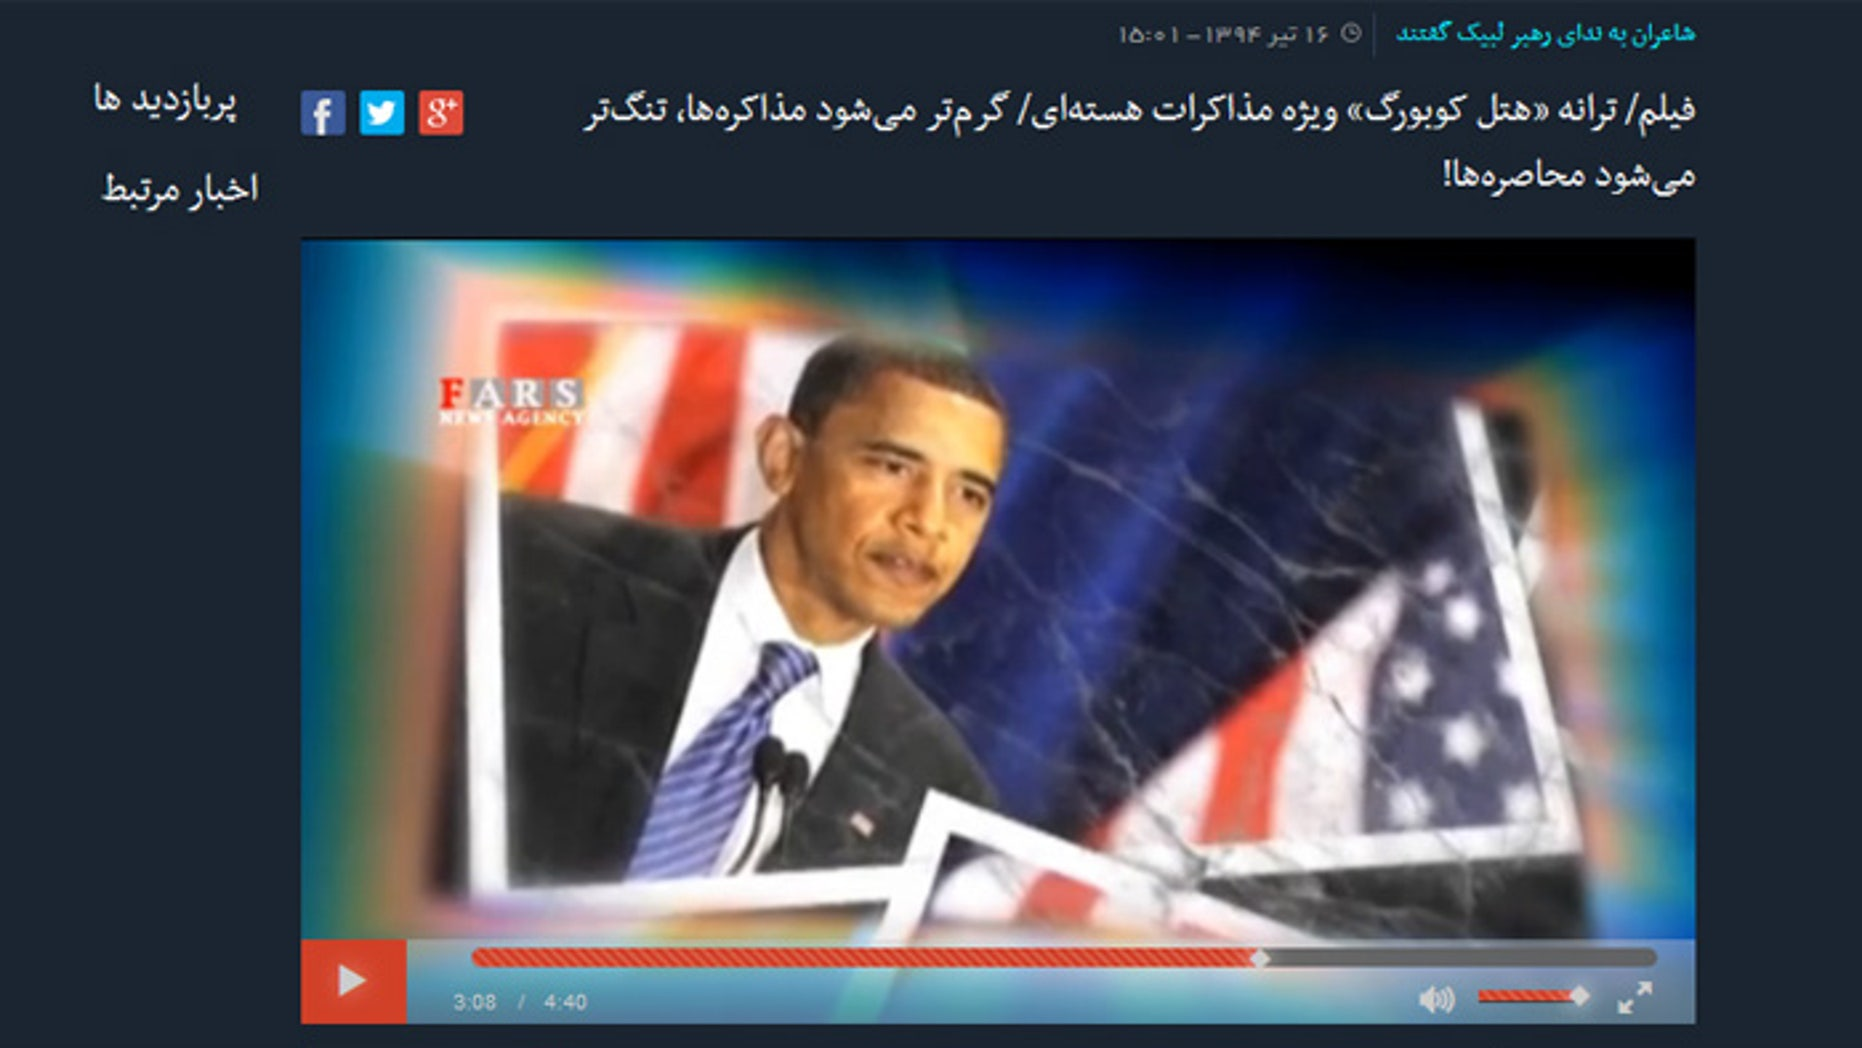 """A new song in Iran takes aim at President Obama and warns not to trust the """"wolves"""" of the U.S. (FARS screengrab)"""